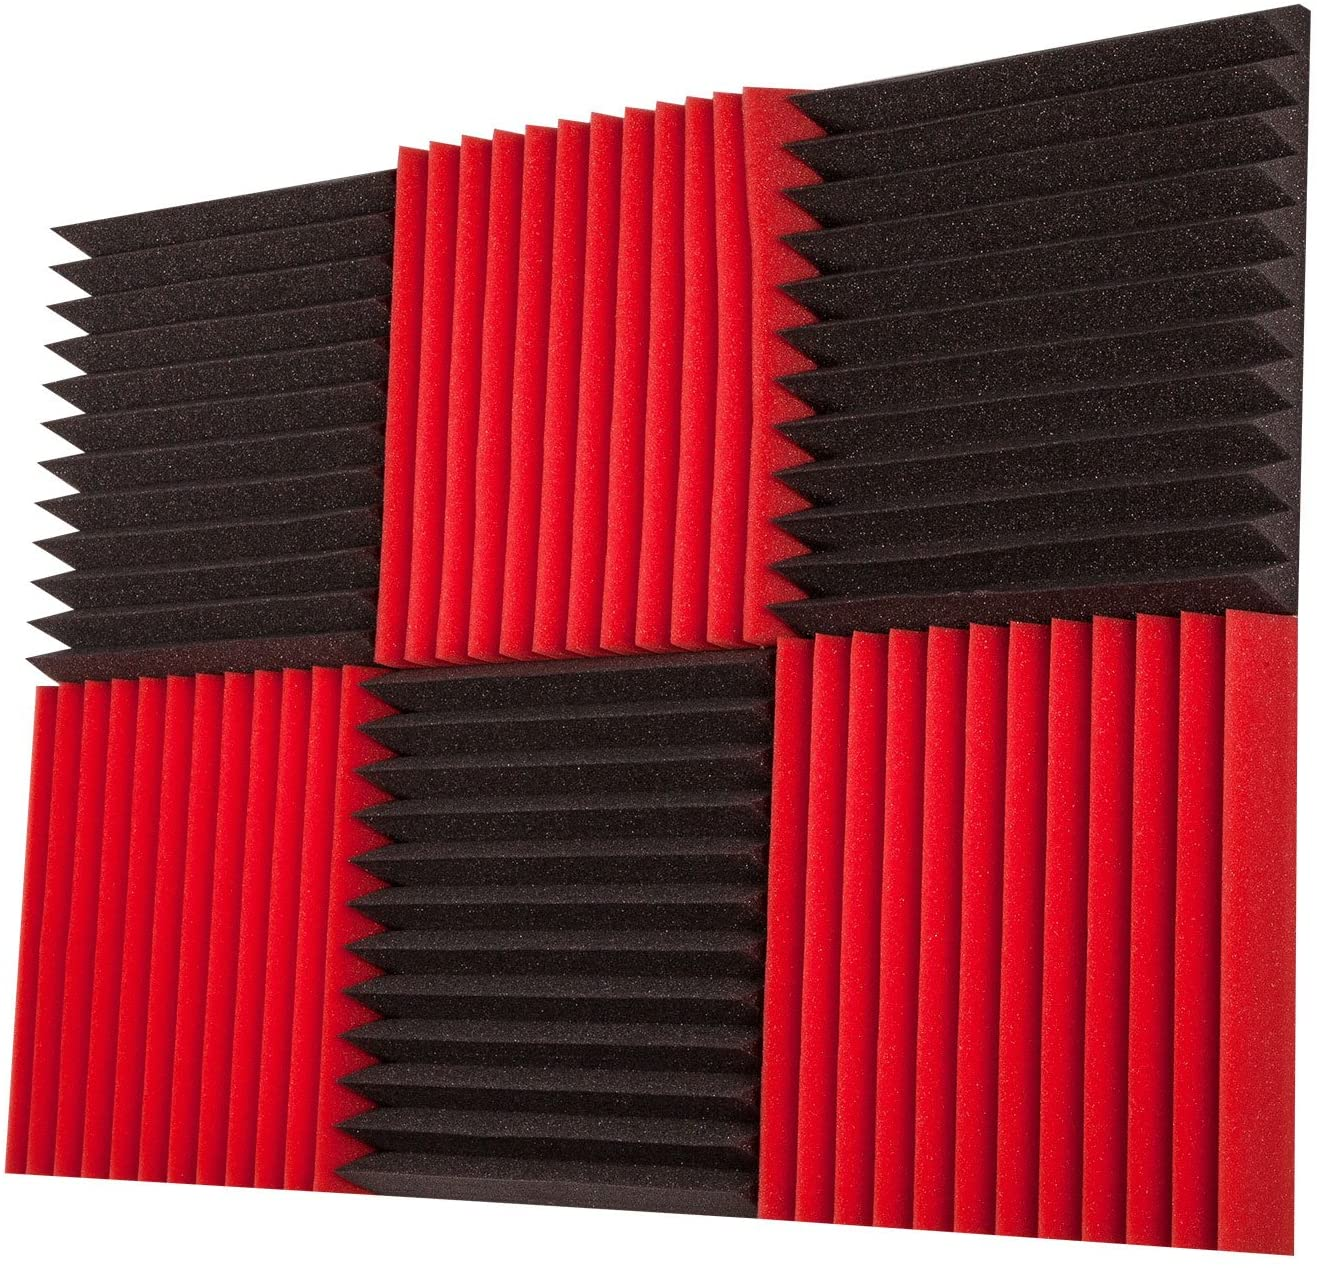 Foamily 6 Pack- Red/Charcoal Acoustic Panels Studio Foam Wedges 2 X 12 X 12